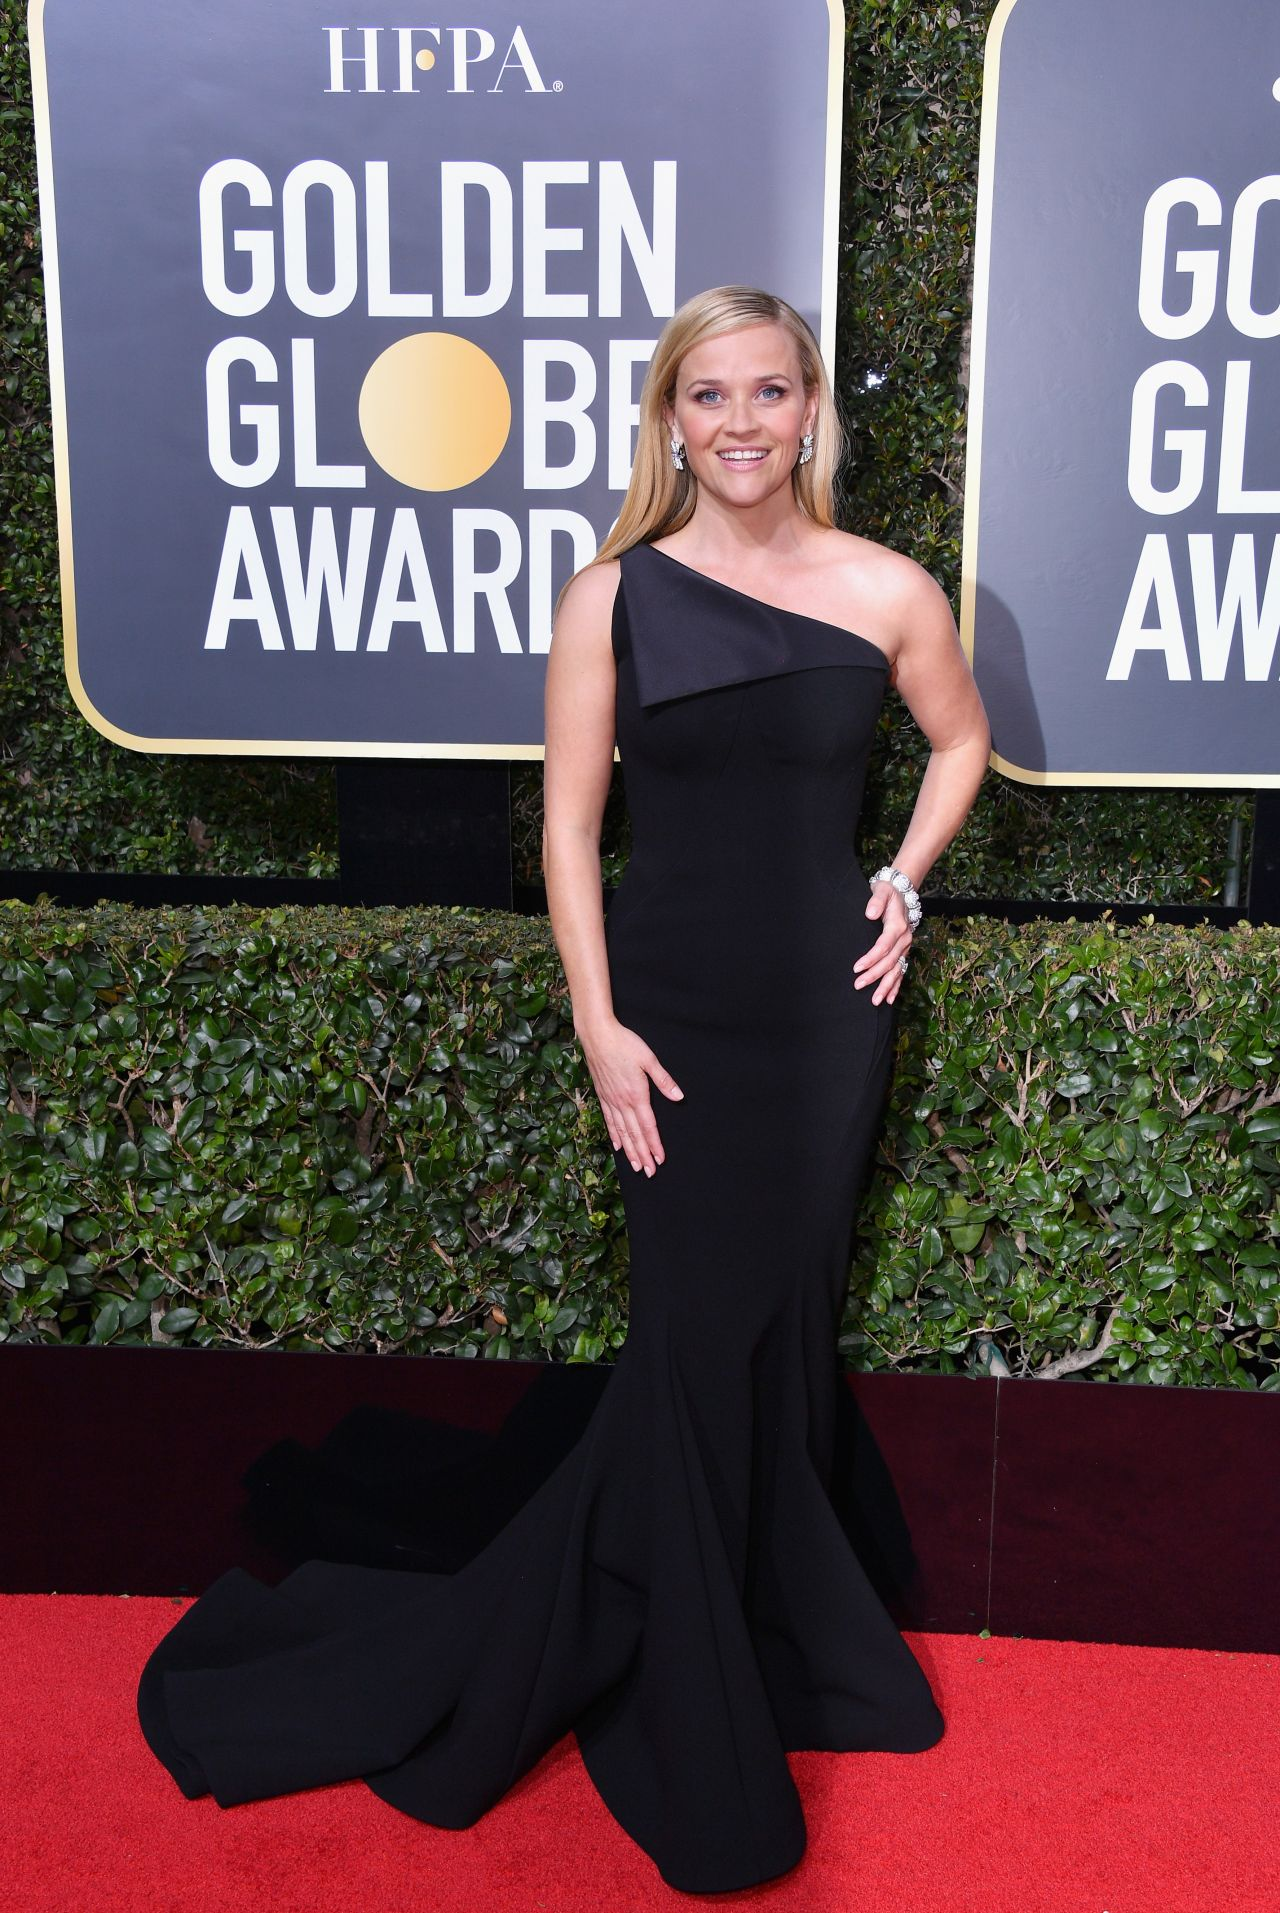 http://celebmafia.com/wp-content/uploads/2018/01/reese-witherspoon-golden-globe-awards-2018-8.jpg